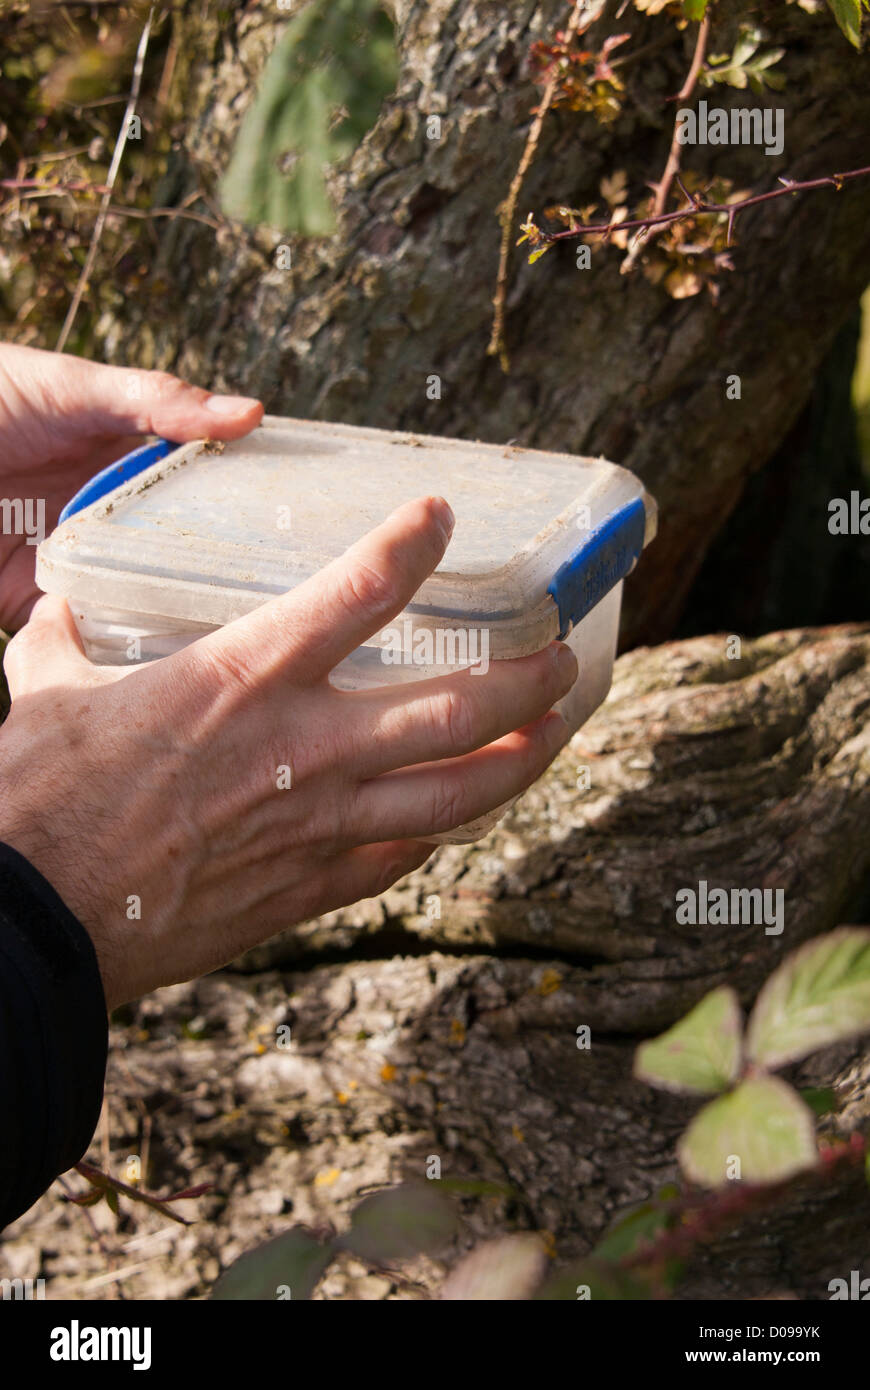 Finding a geocache box, Sheffield, South Yorkshire, England. - Stock Image